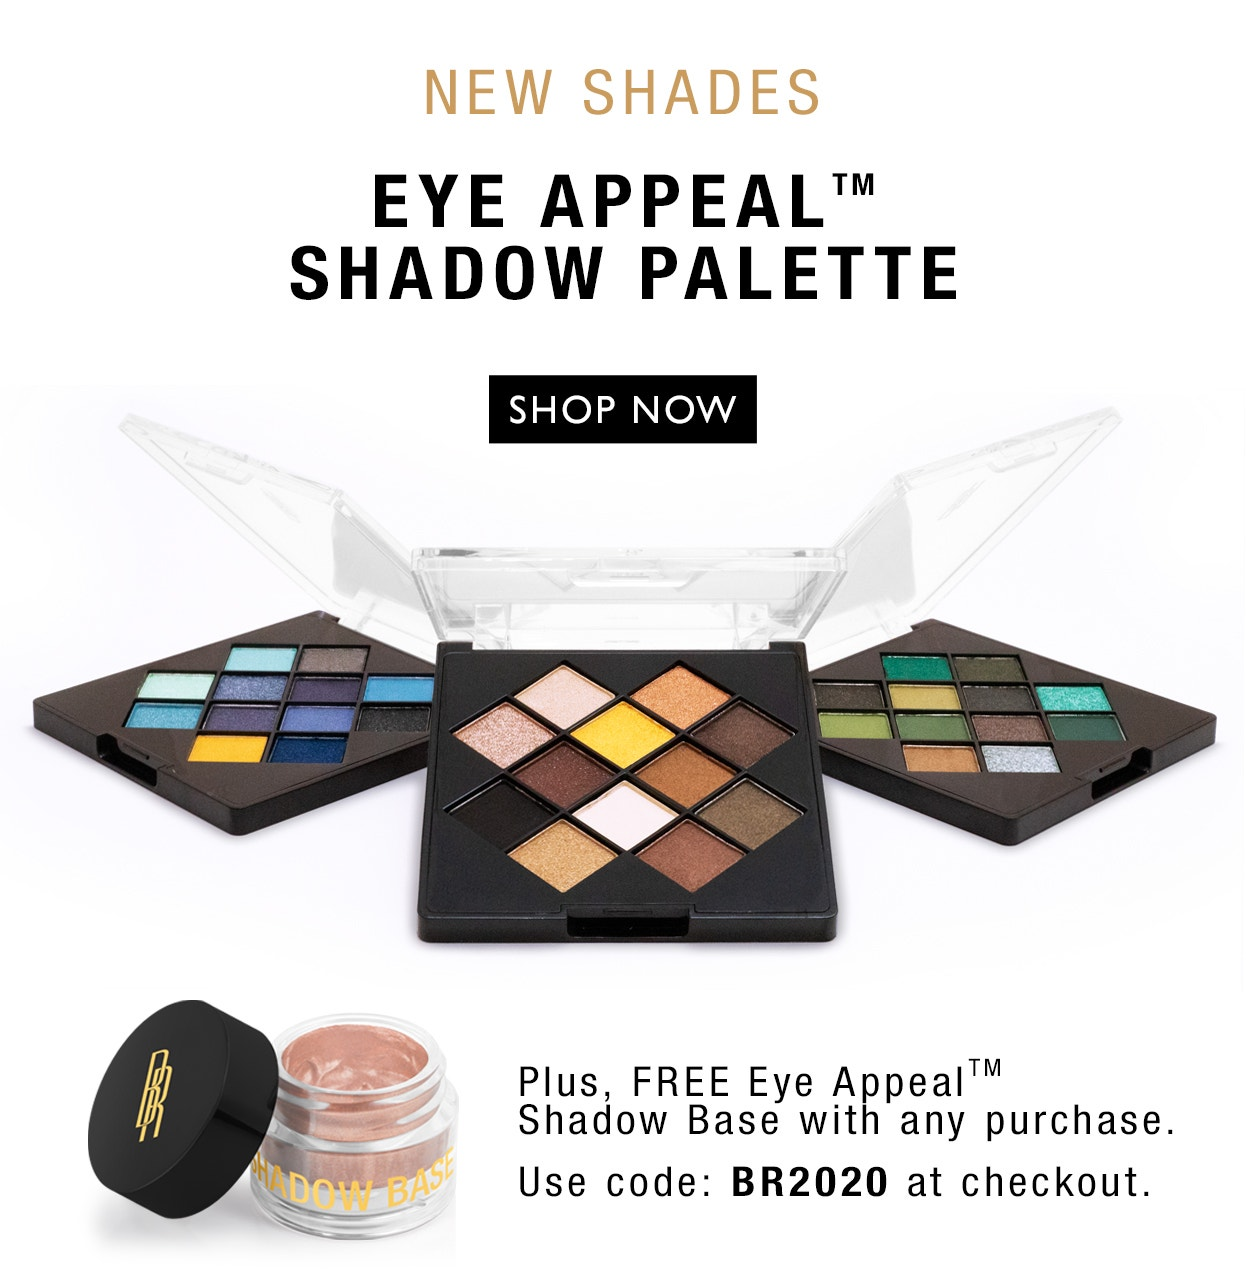 New Shades! Eye Appeal Shadow Palette | Plus, Free gift with any purchase | Use code: BR2020